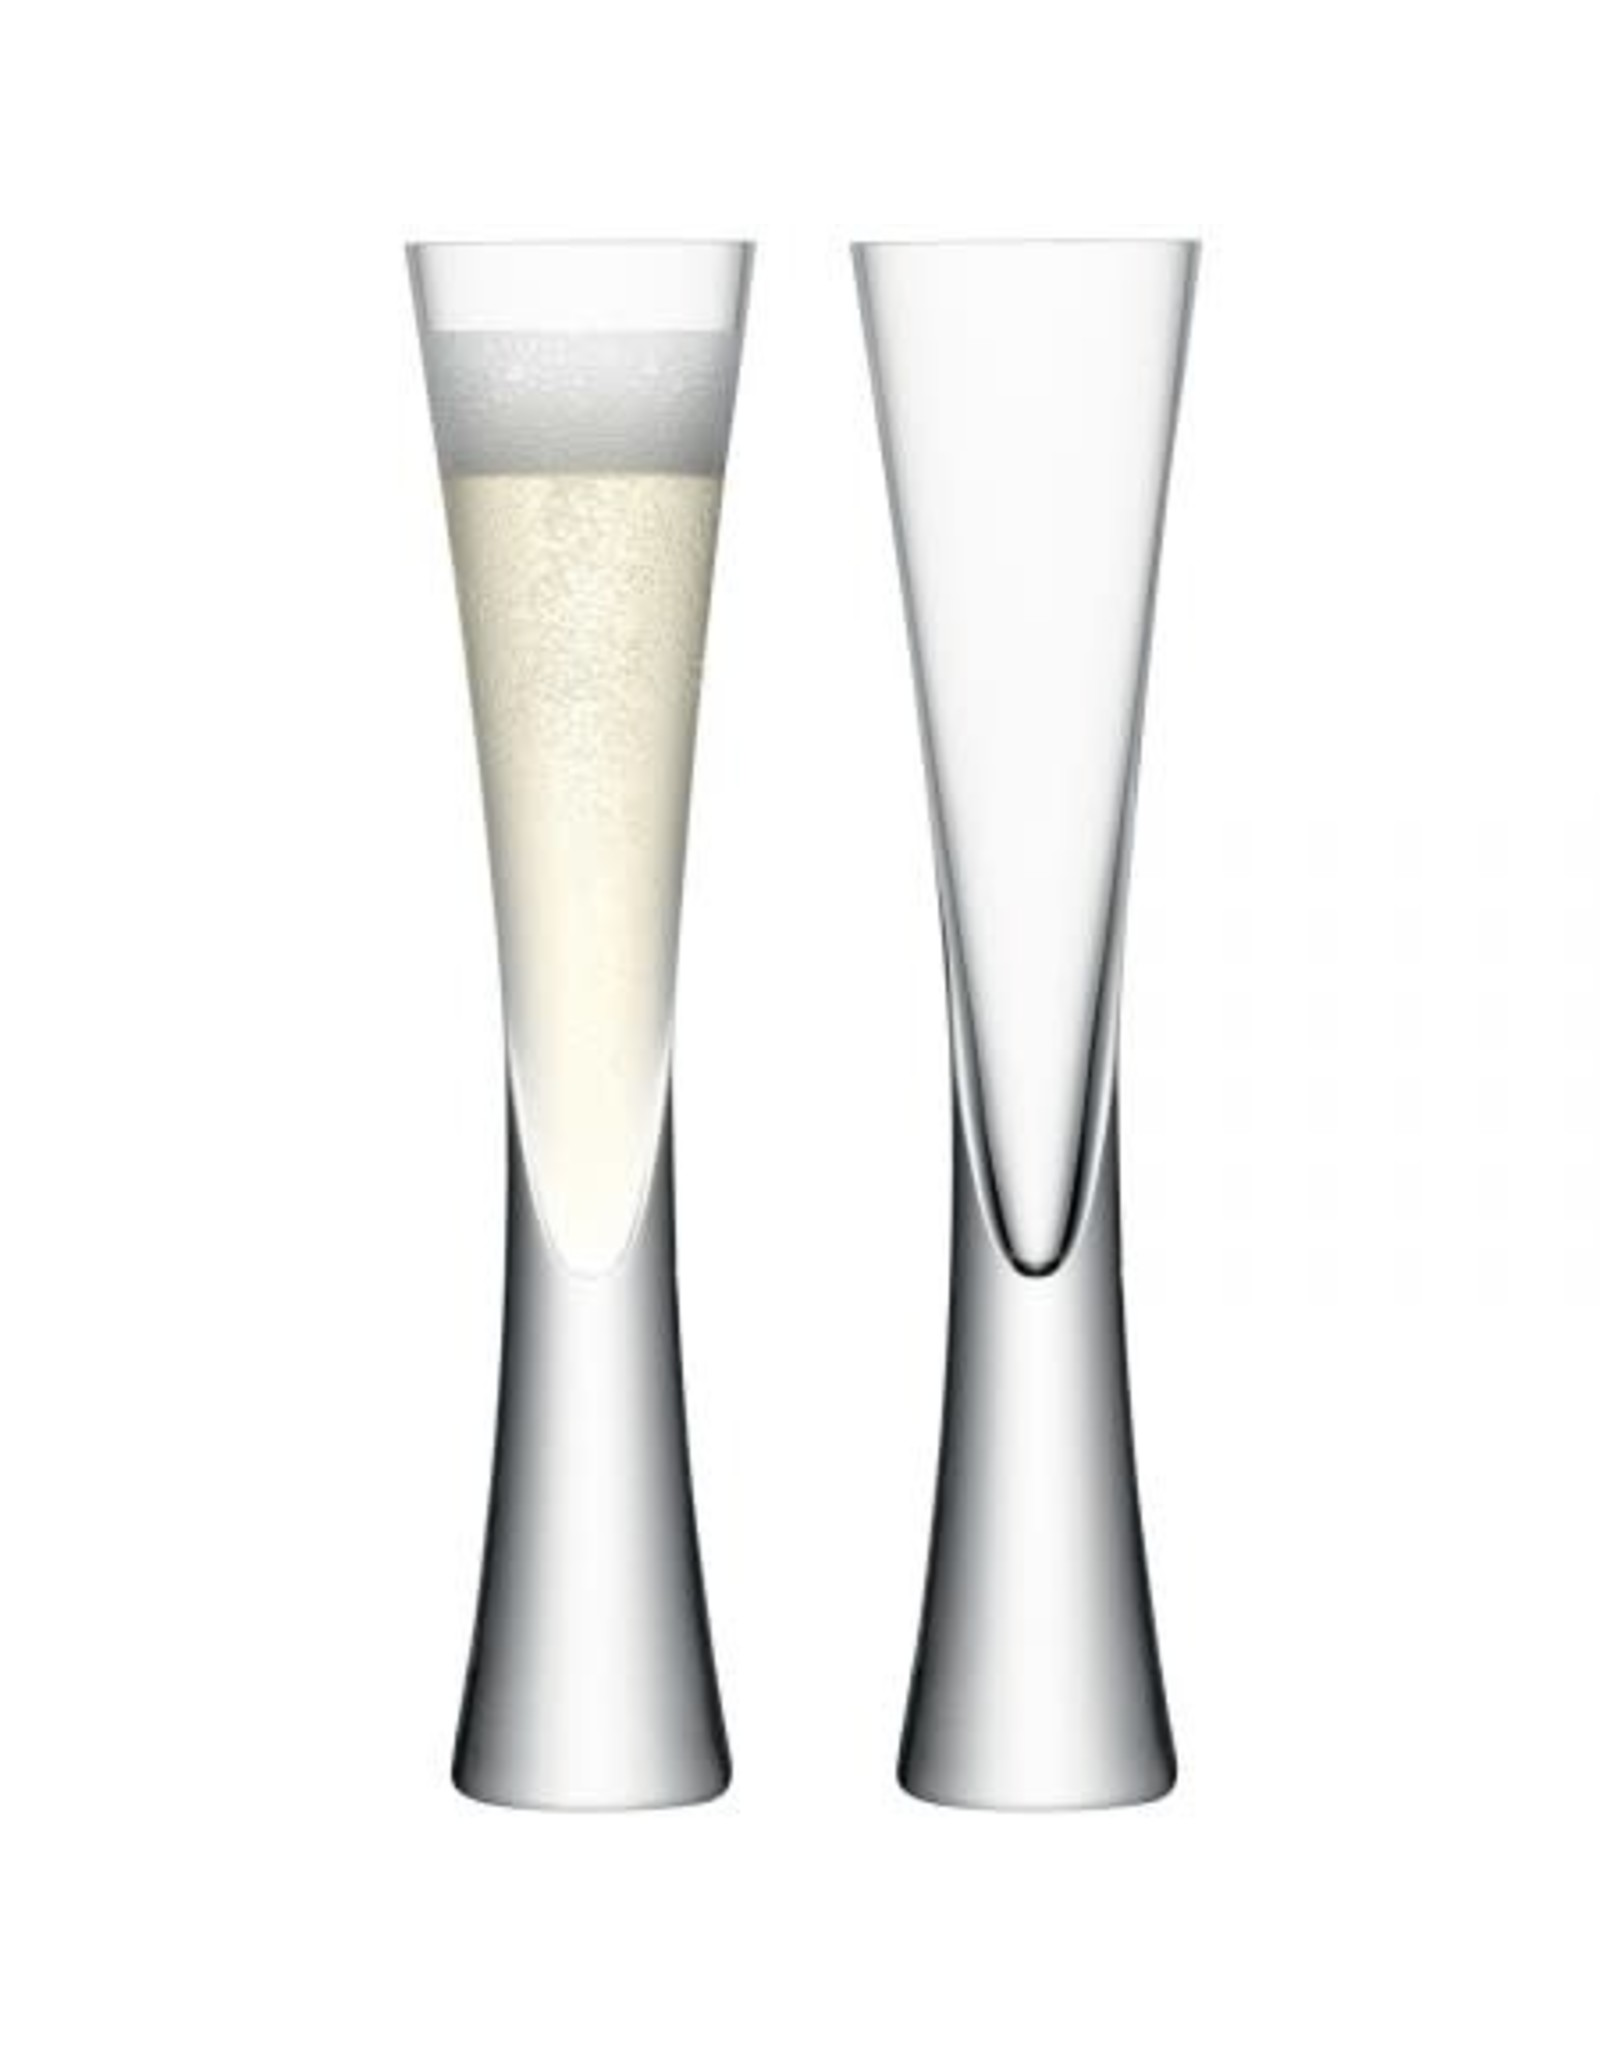 LSA International Moya Champagne Flute, Set of 2 Clear